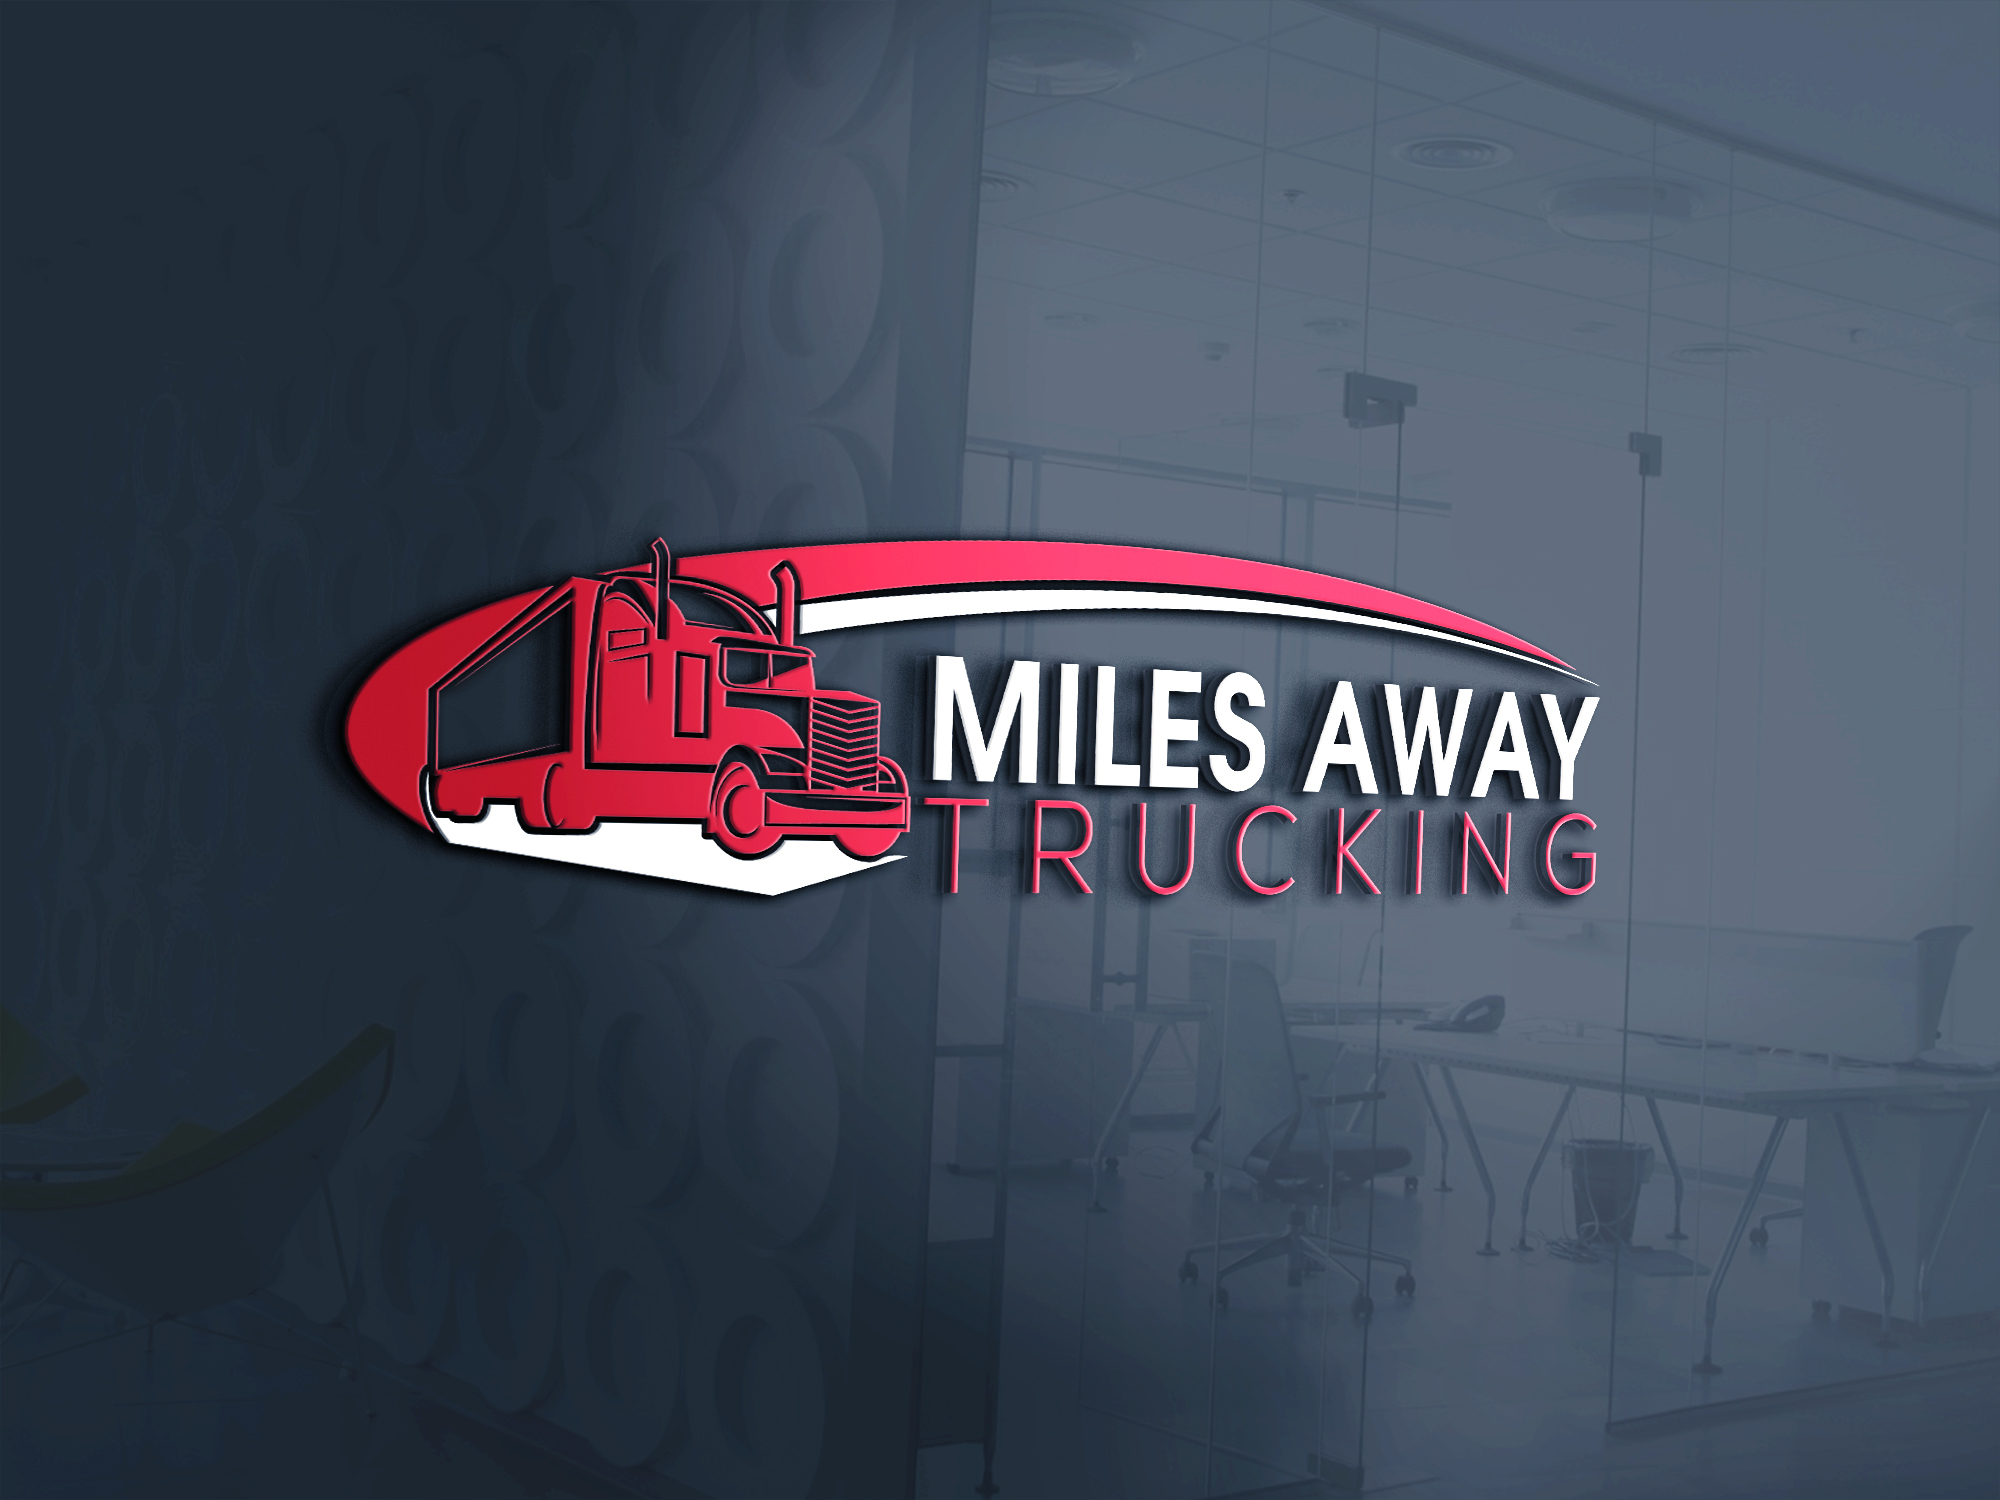 MILES AWAY TRUCKING ANNOUNCES NEW REFRIGERATED DIVISION